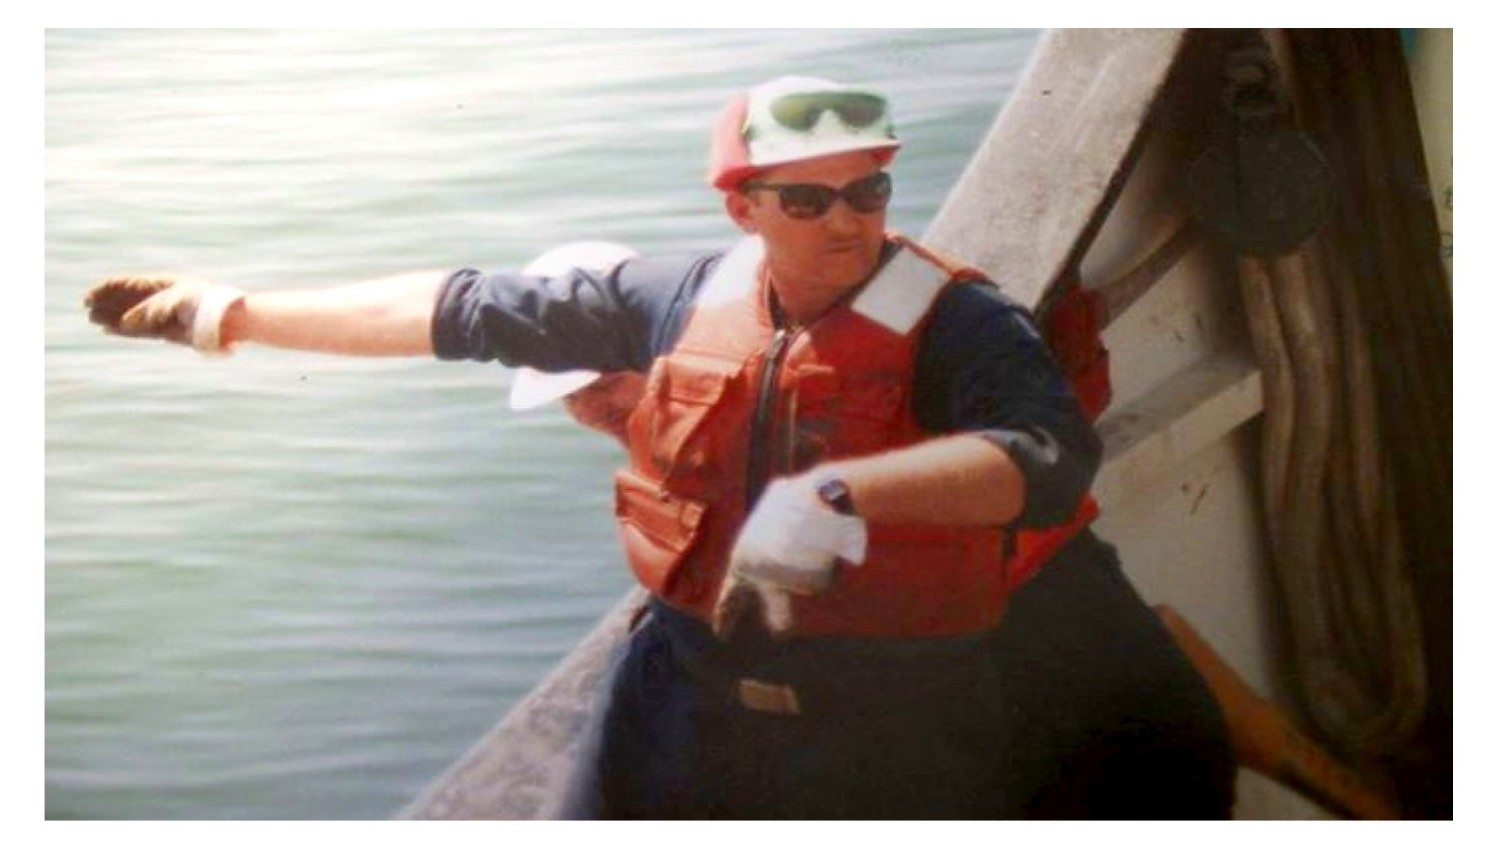 tim watson as buoy deck supervisor cgc cowslip-